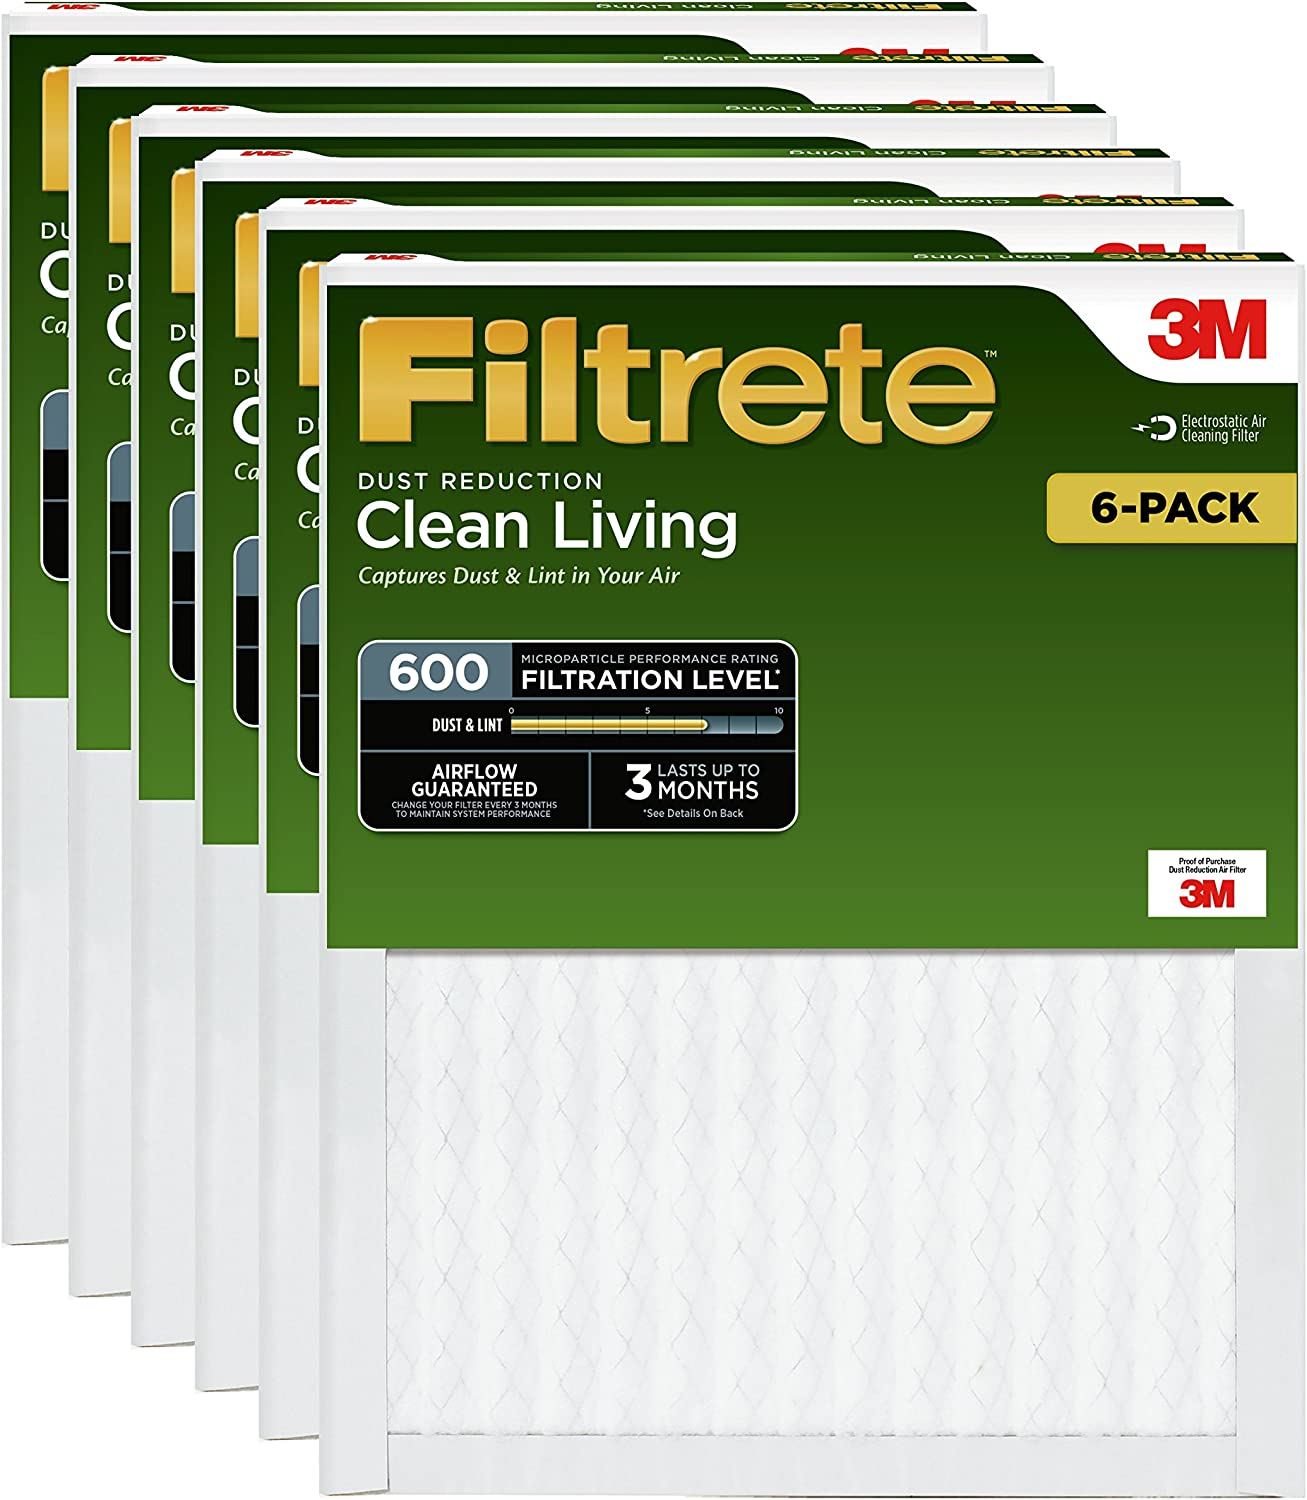 Filtrete Clean Living Dust Reduction AC Furnace Air Filter, MPR 600, 16 x 25 x 1-Inches, 6-pack